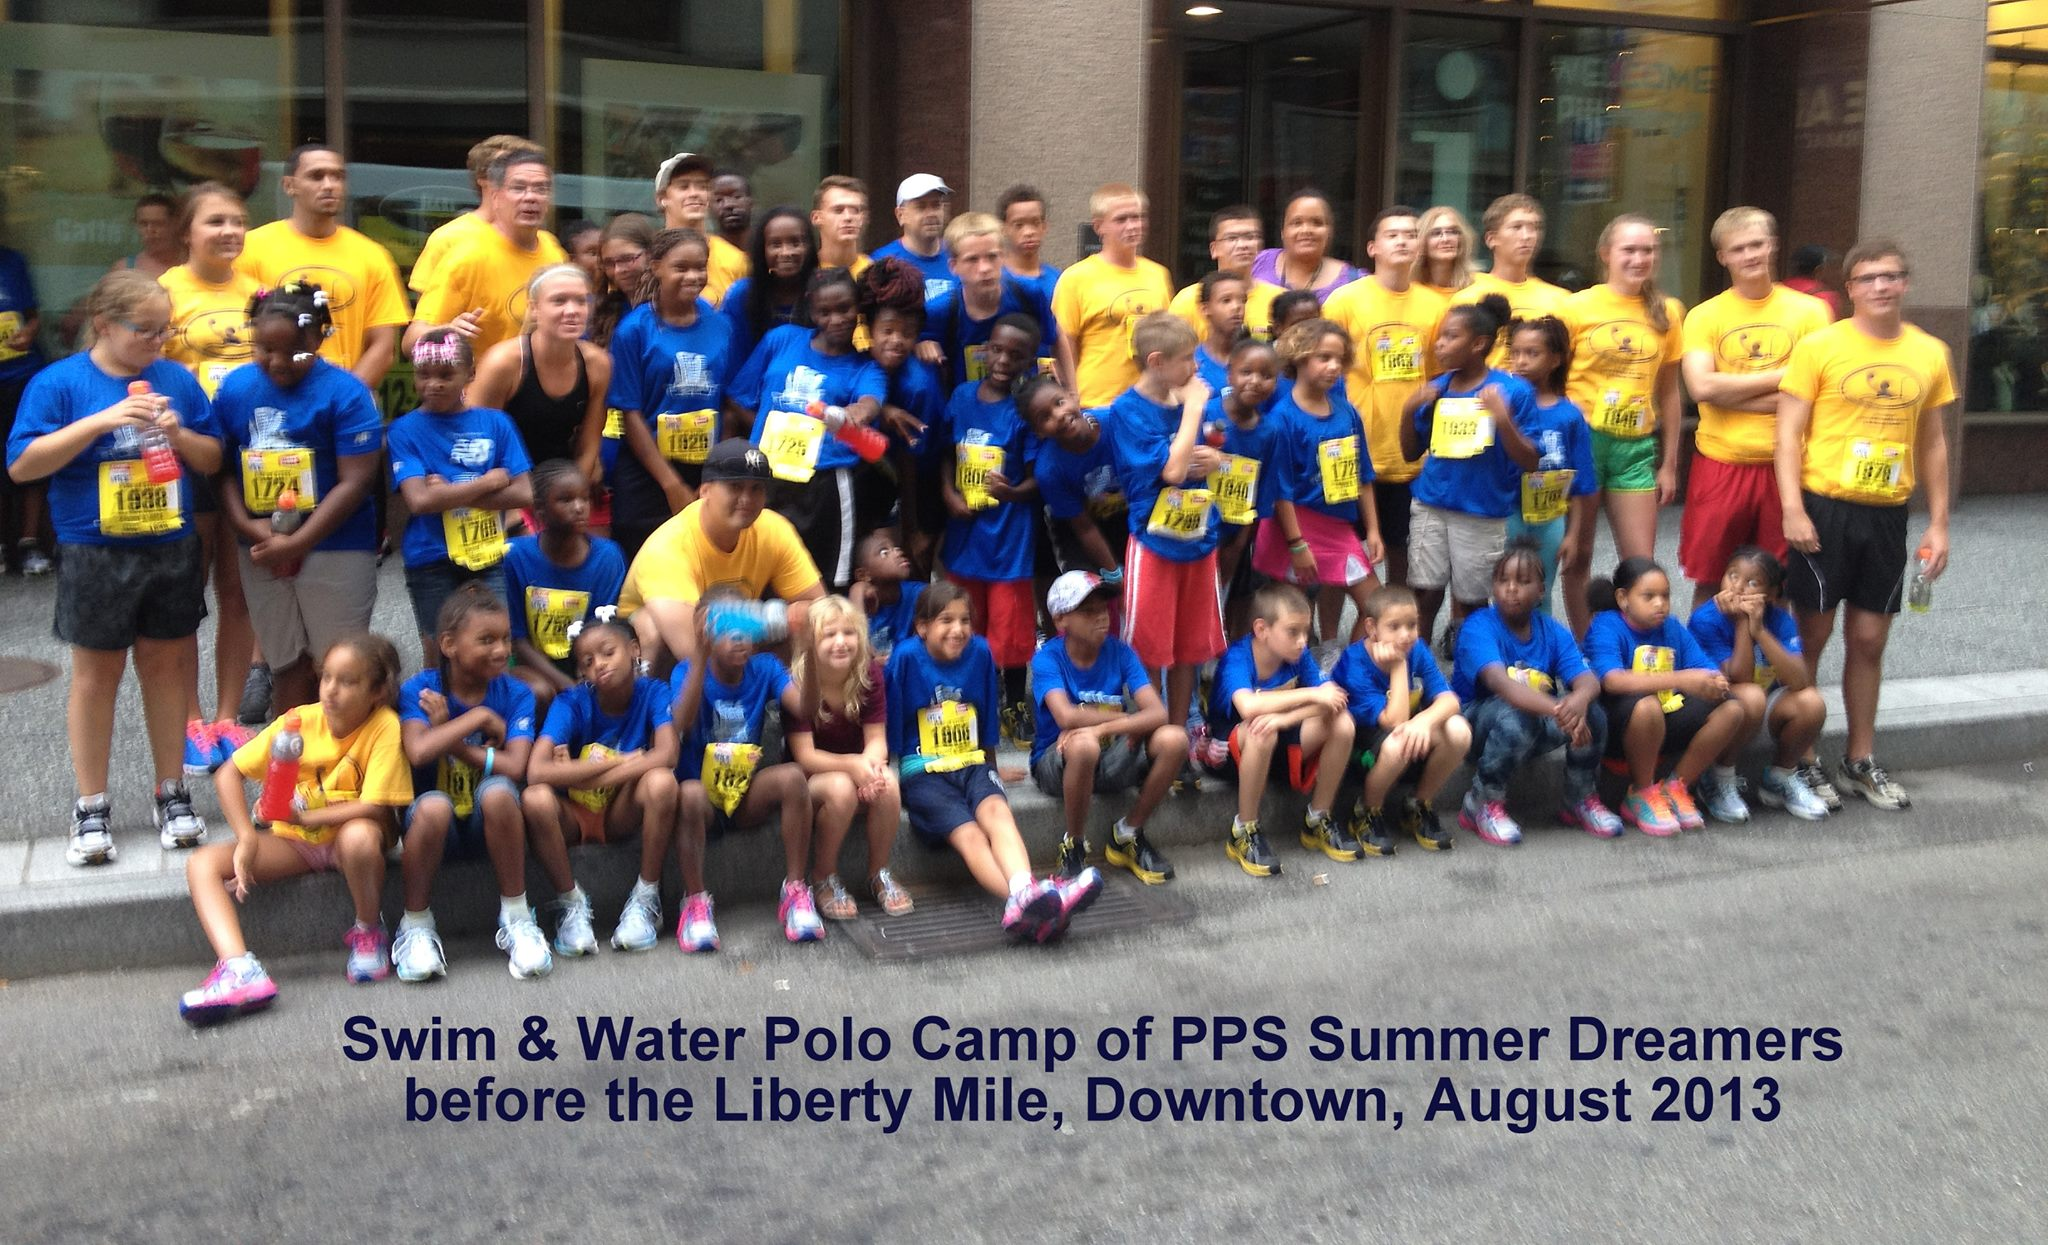 Summer Dreamers at Liberty Mile